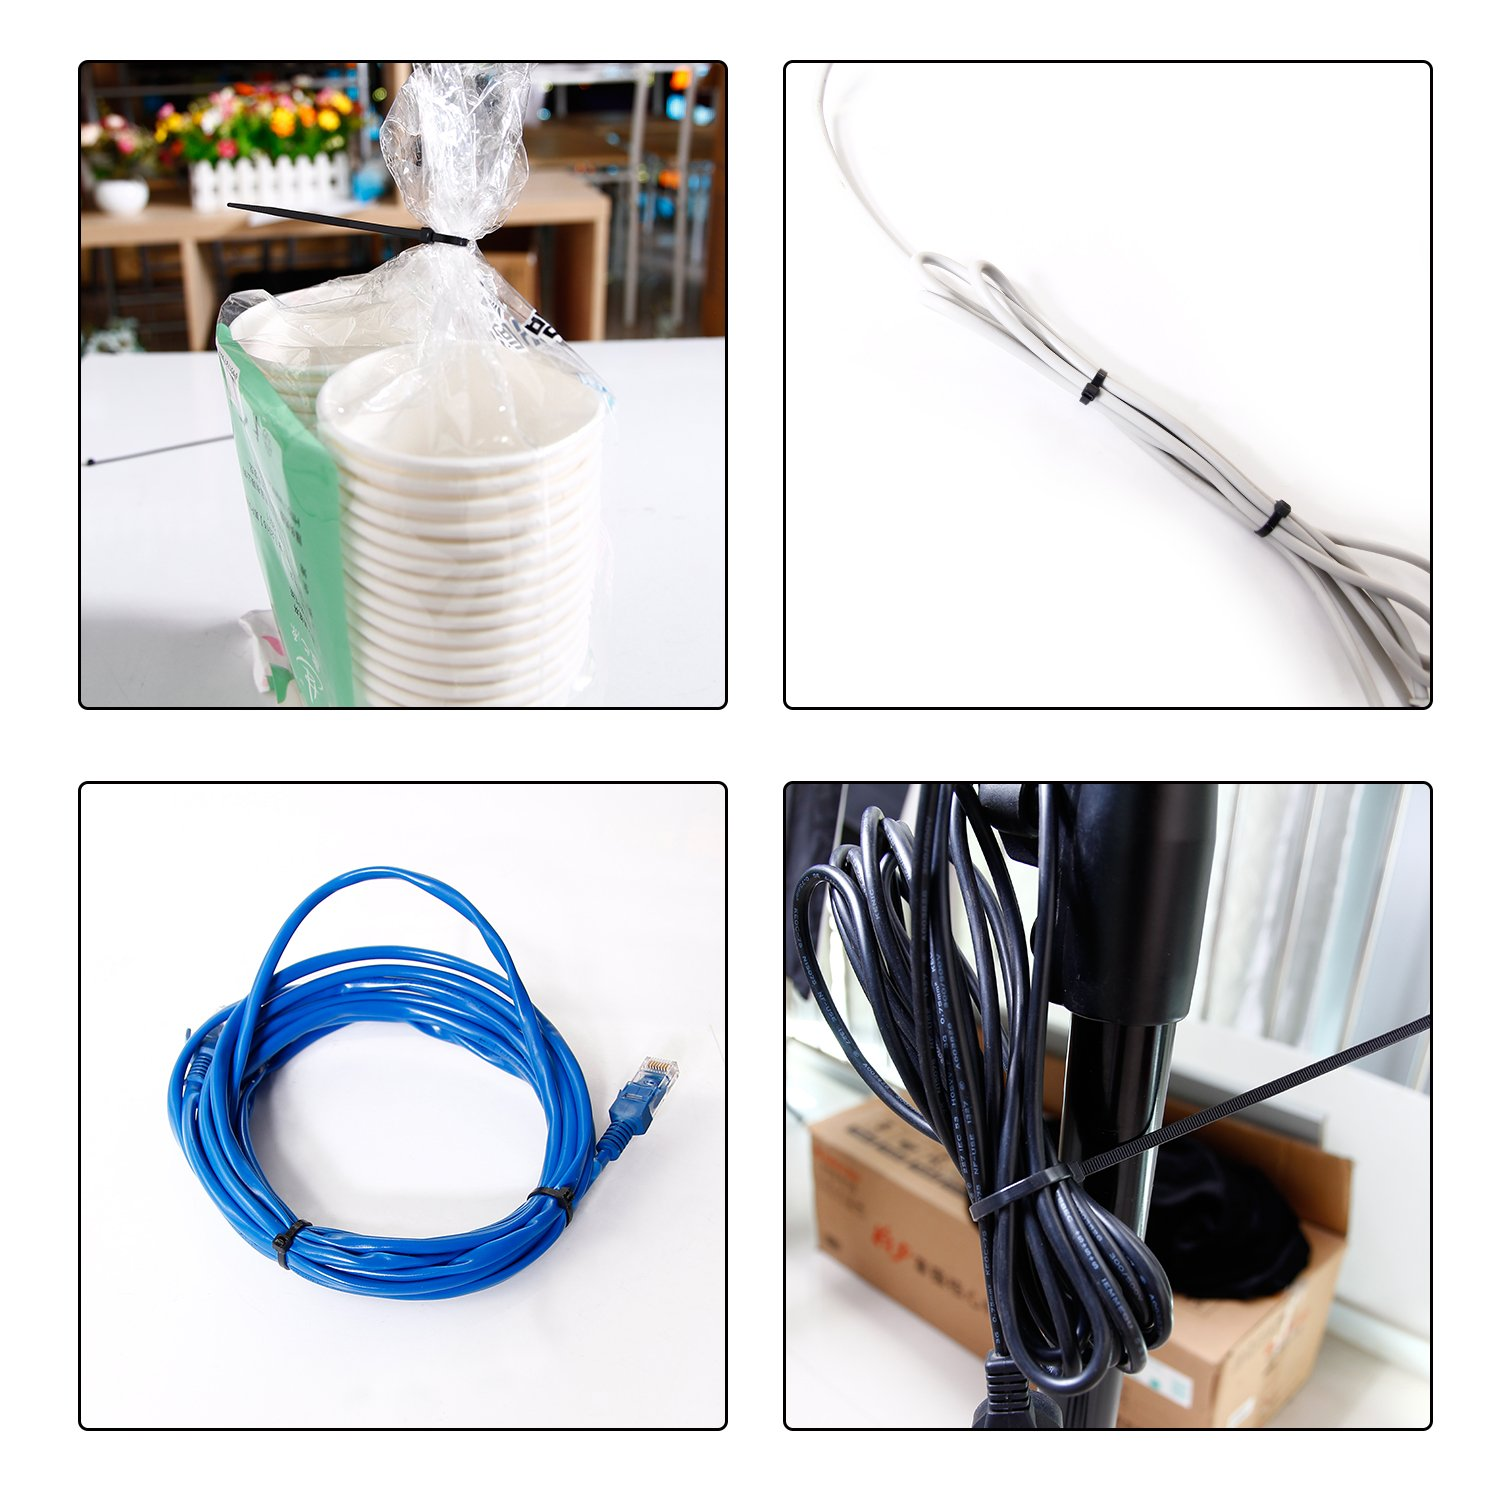 Cable Zip Ties 4''+6''+8''+12'' Self Locking Nylon Cable Wire Tie Black for Home Office Garden Garage, Workshop by PAMAGOO (Image #4)